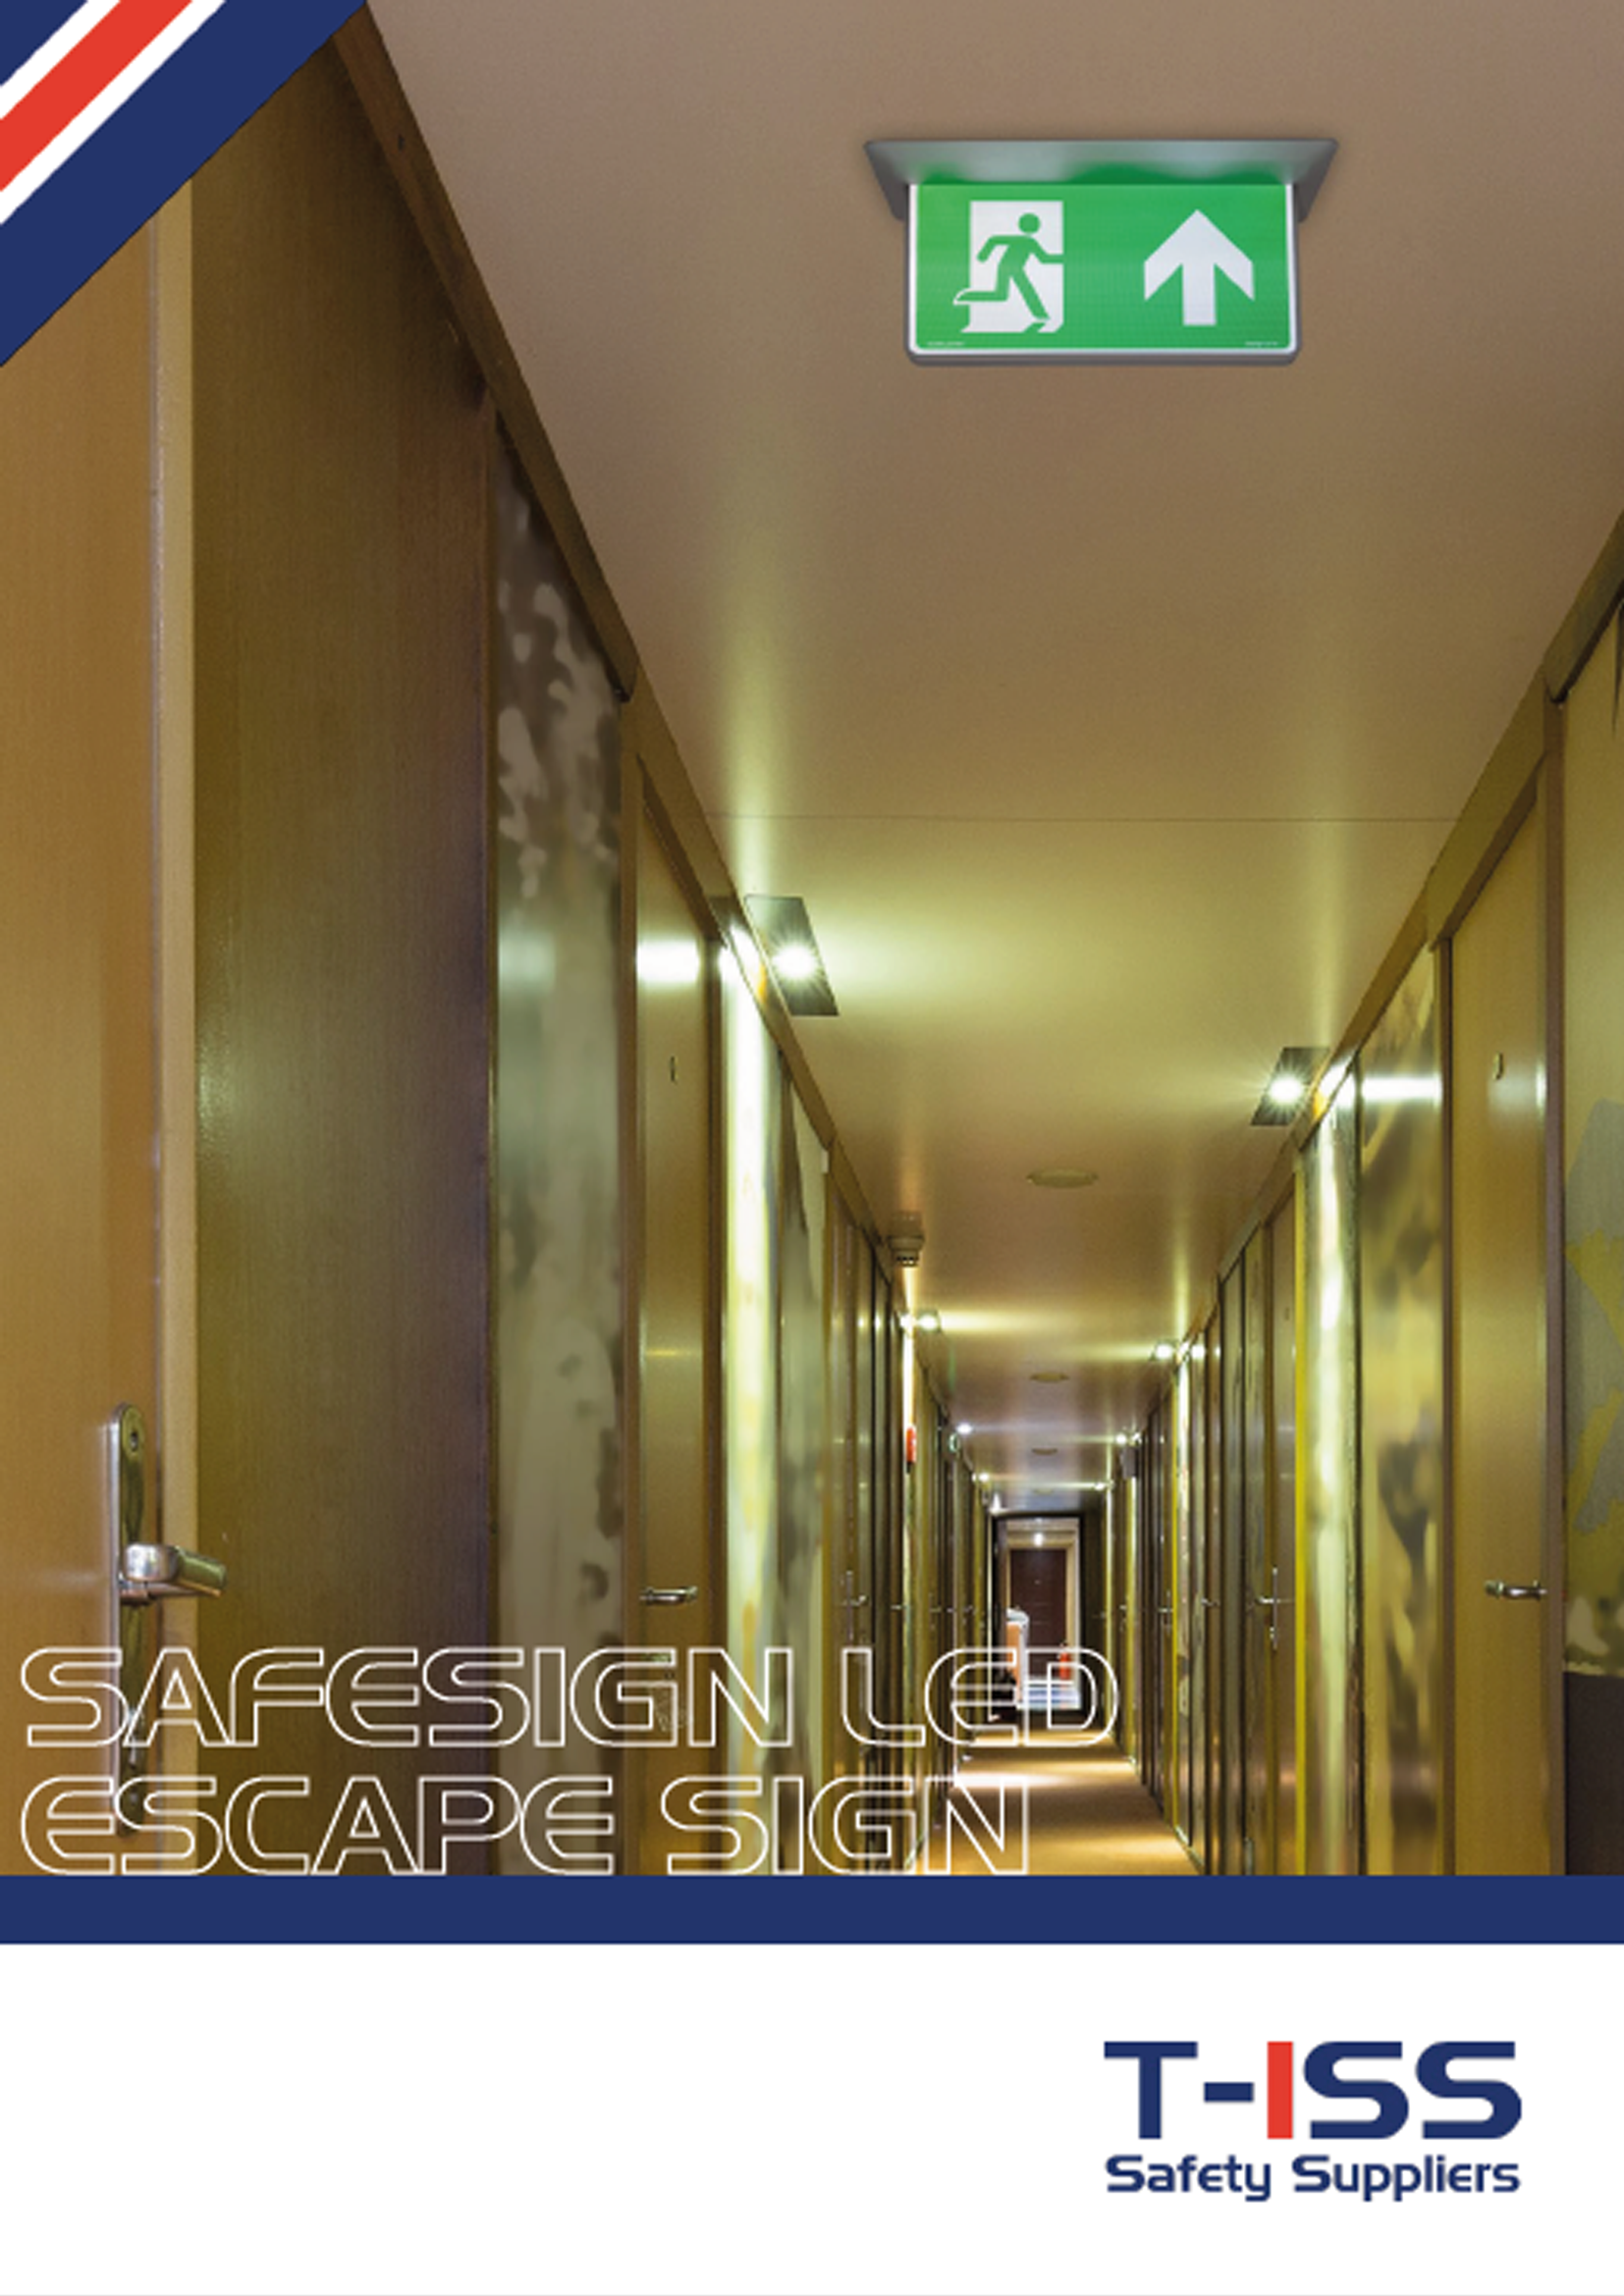 Flyer SafeSign LED Escape Sign by T-ISS Safety Suppliers